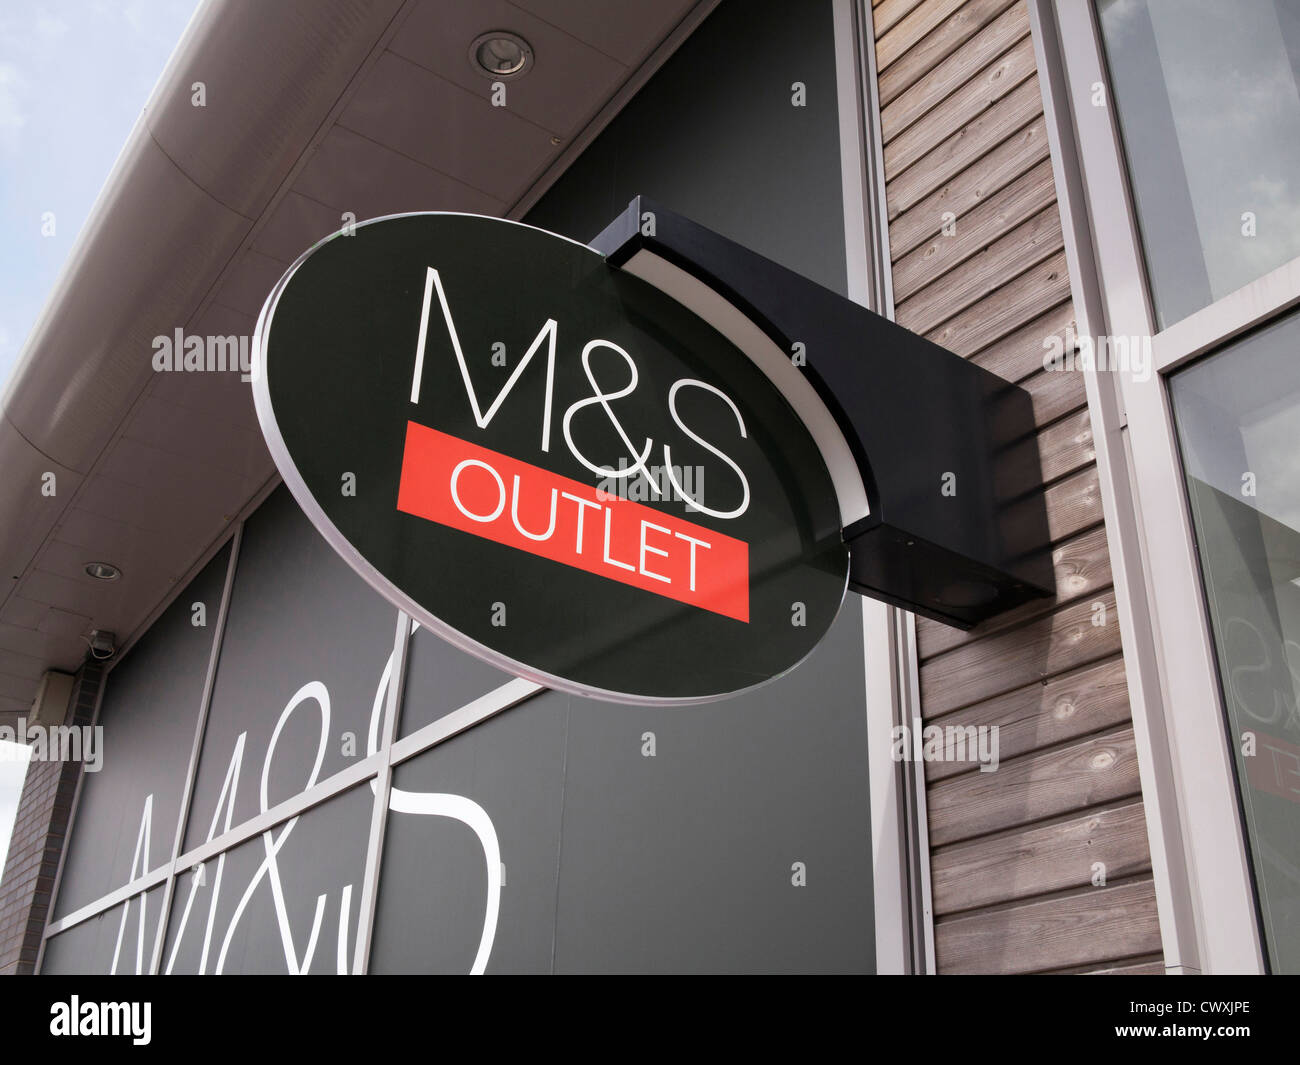 M&S sign at an retail outlet centre - Stock Image